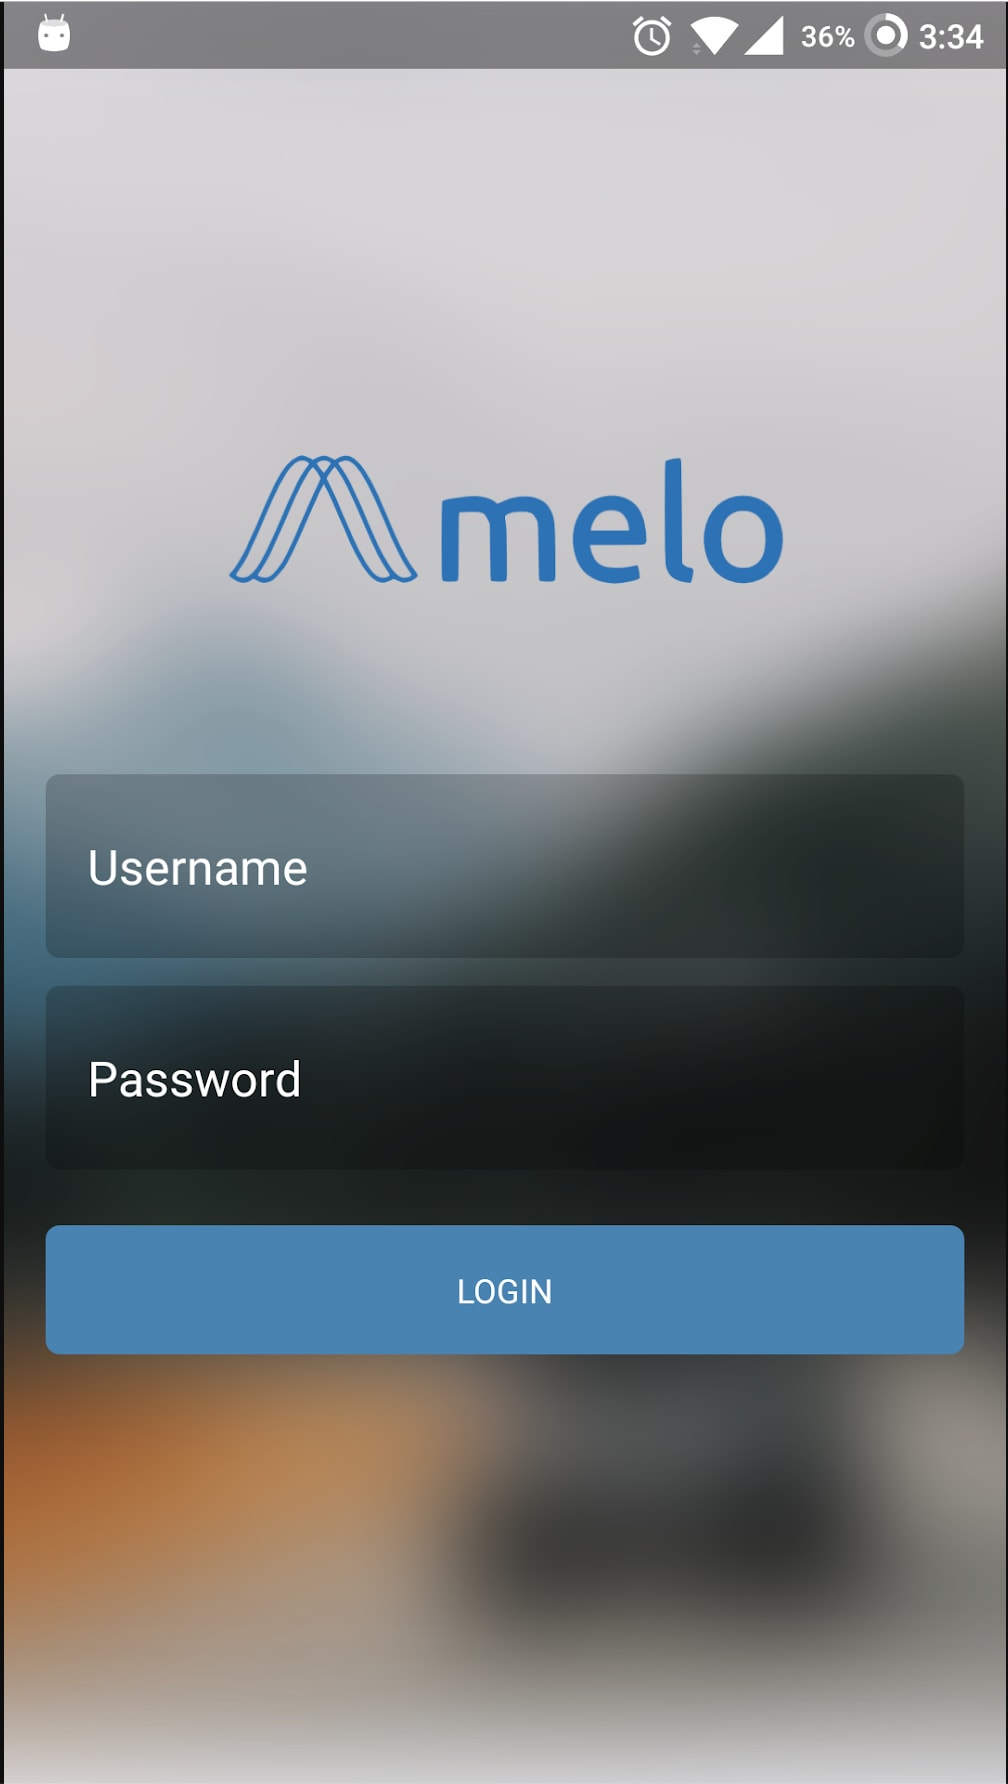 Melo: Real Time Vehicle Tracking App